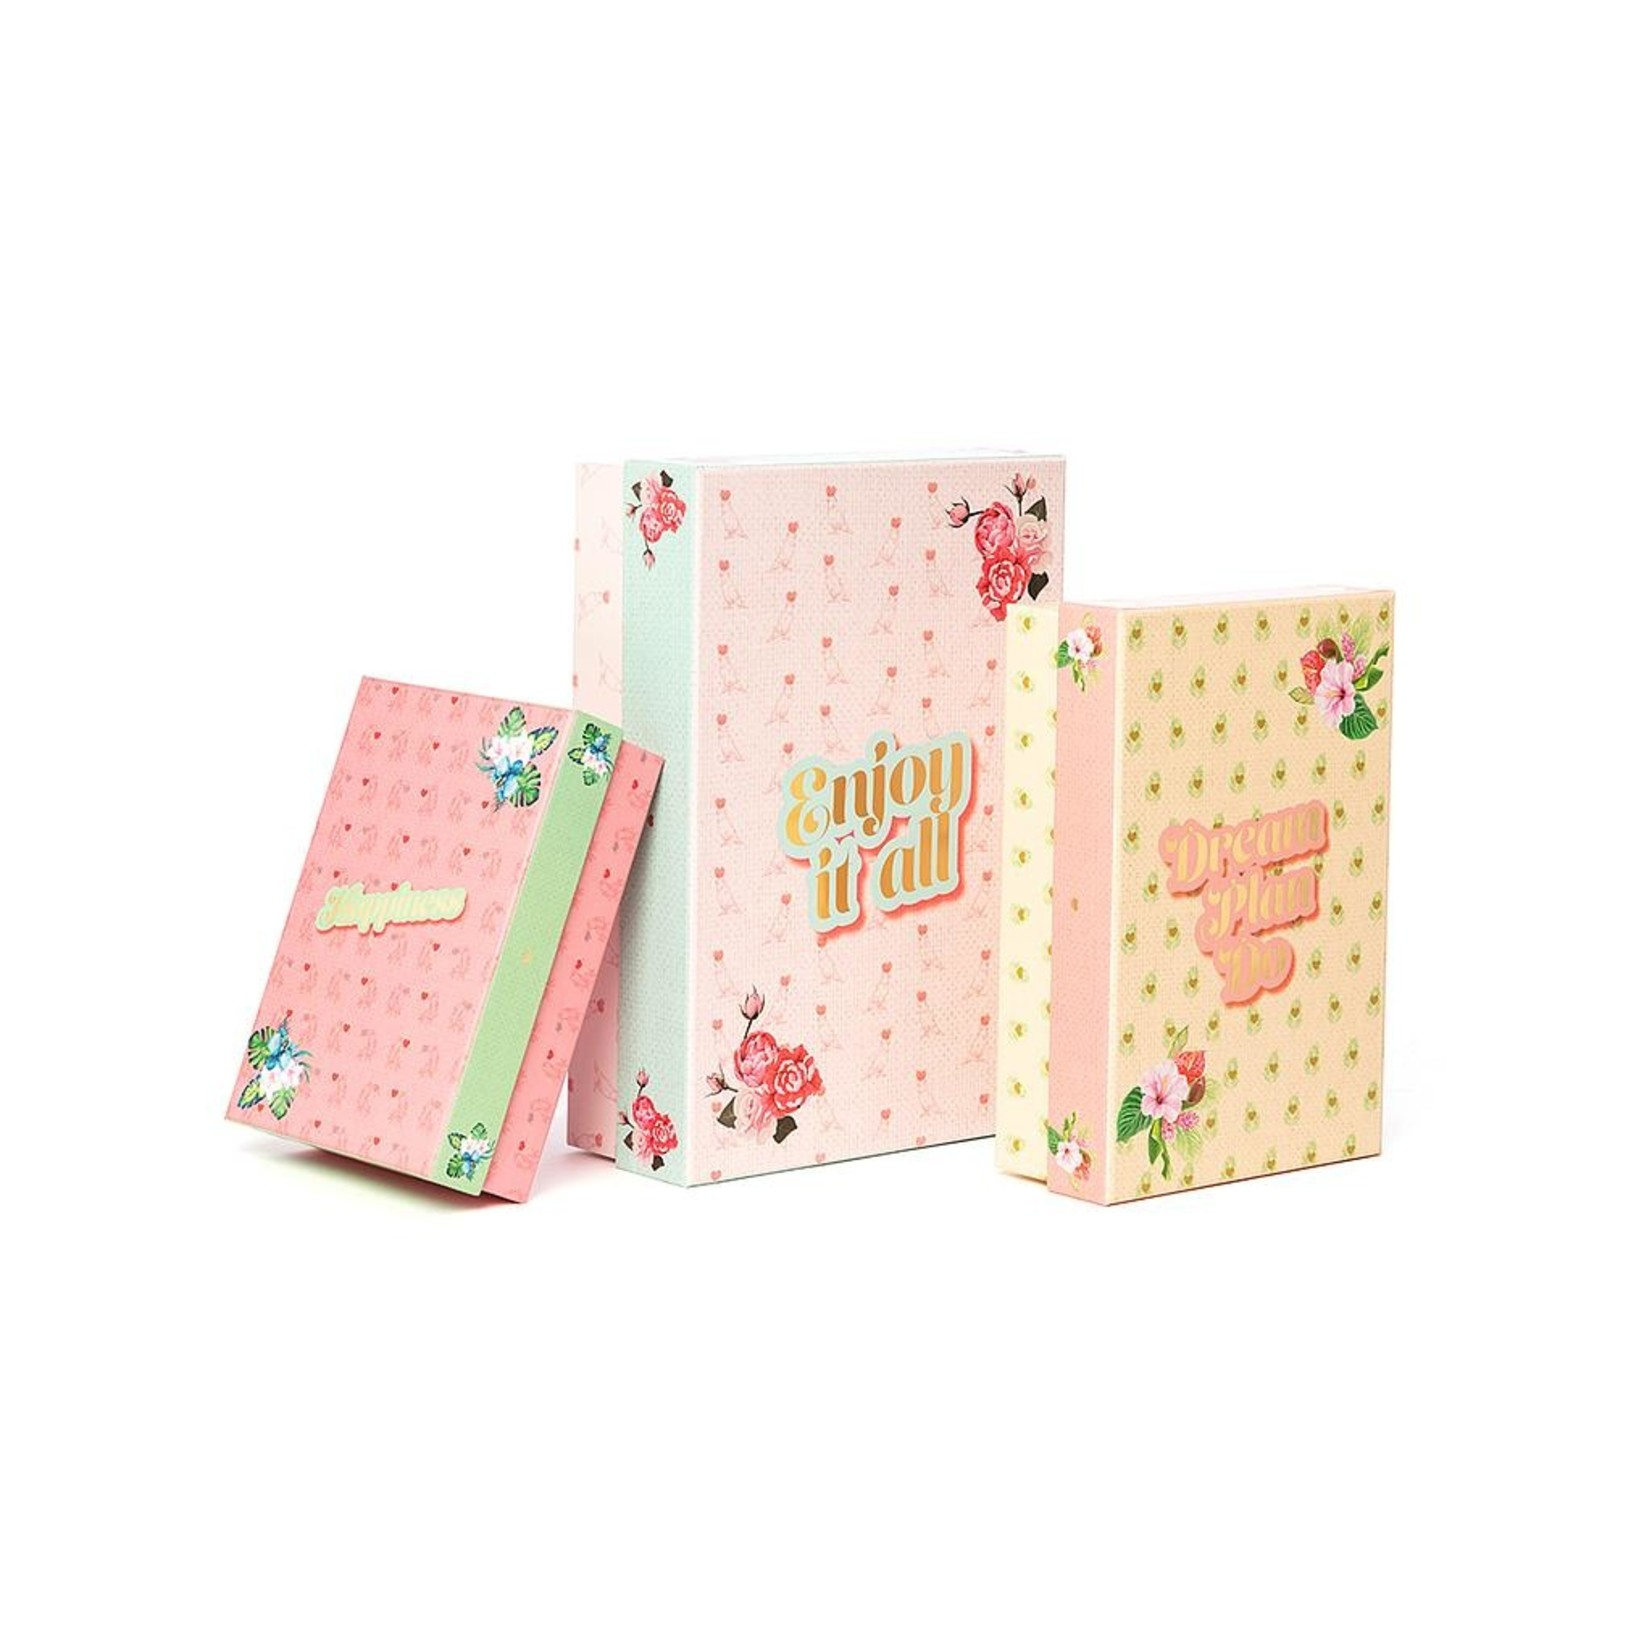 Enfant Terrible Giftbox - Enjoy it all (Chickflick) - Large